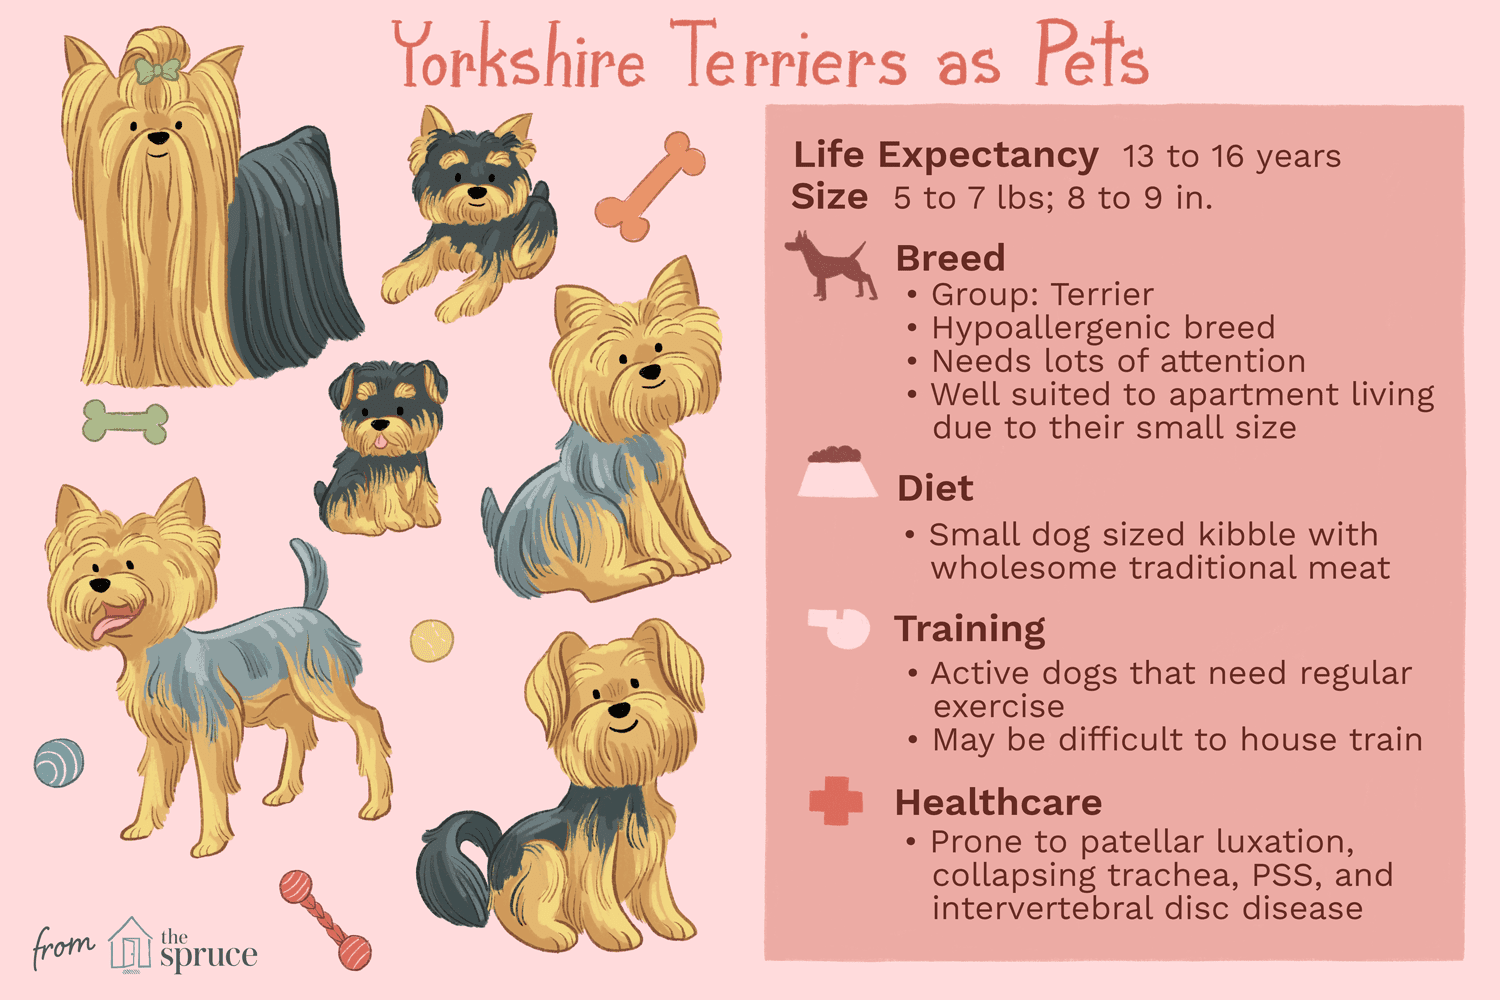 yorkshire terriers as pets illustration